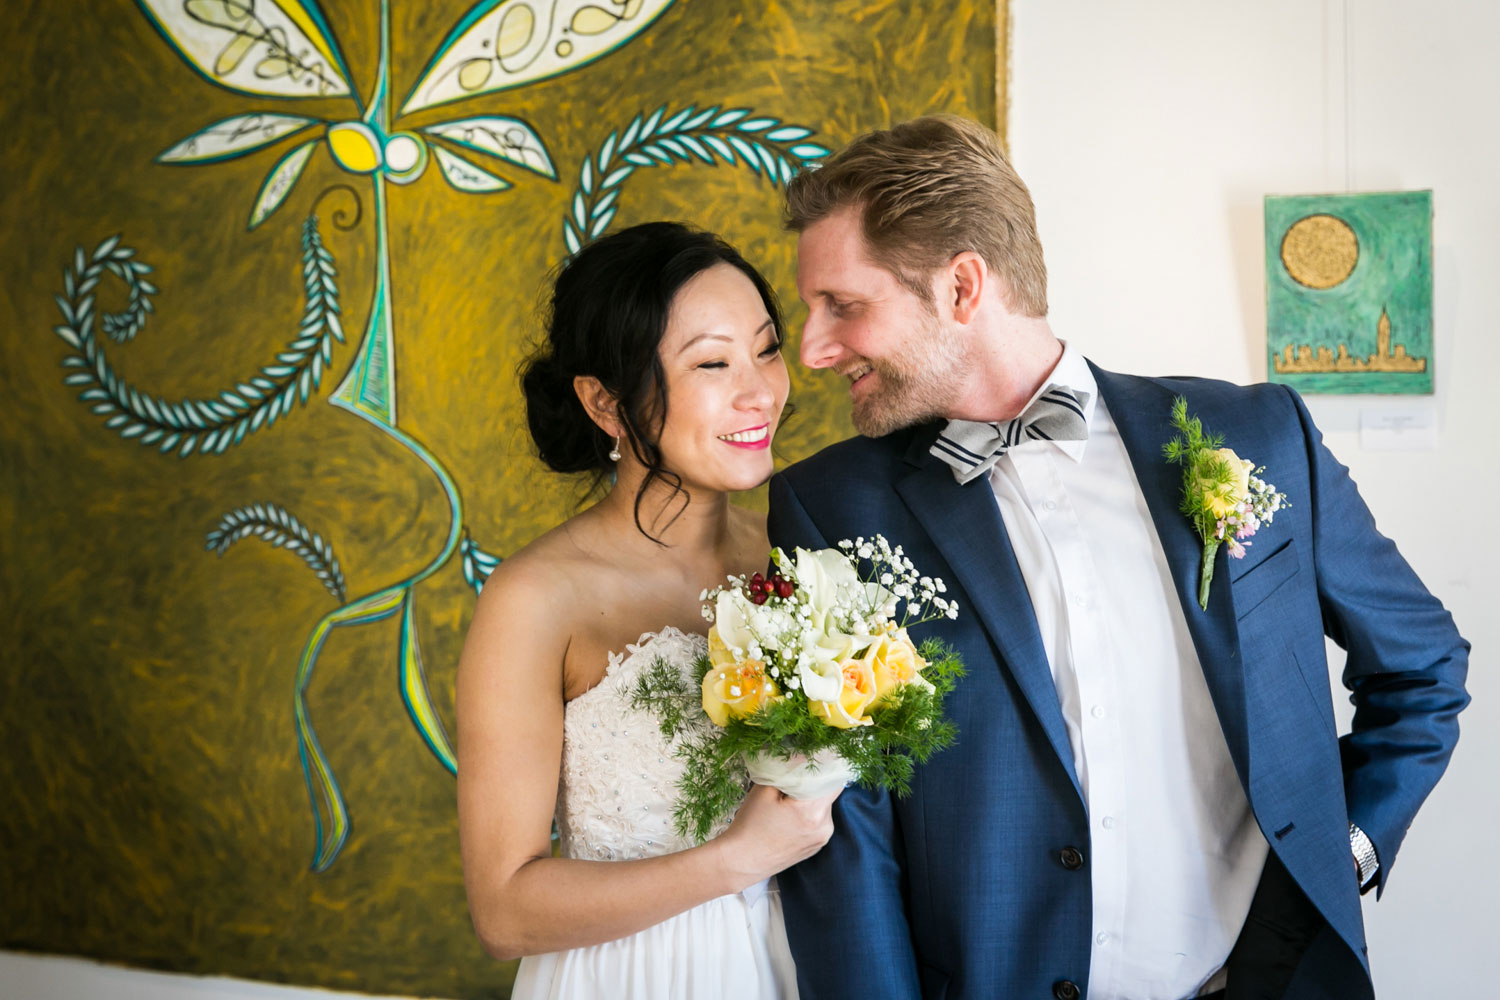 Bride and groom portrait at an Astoria wedding